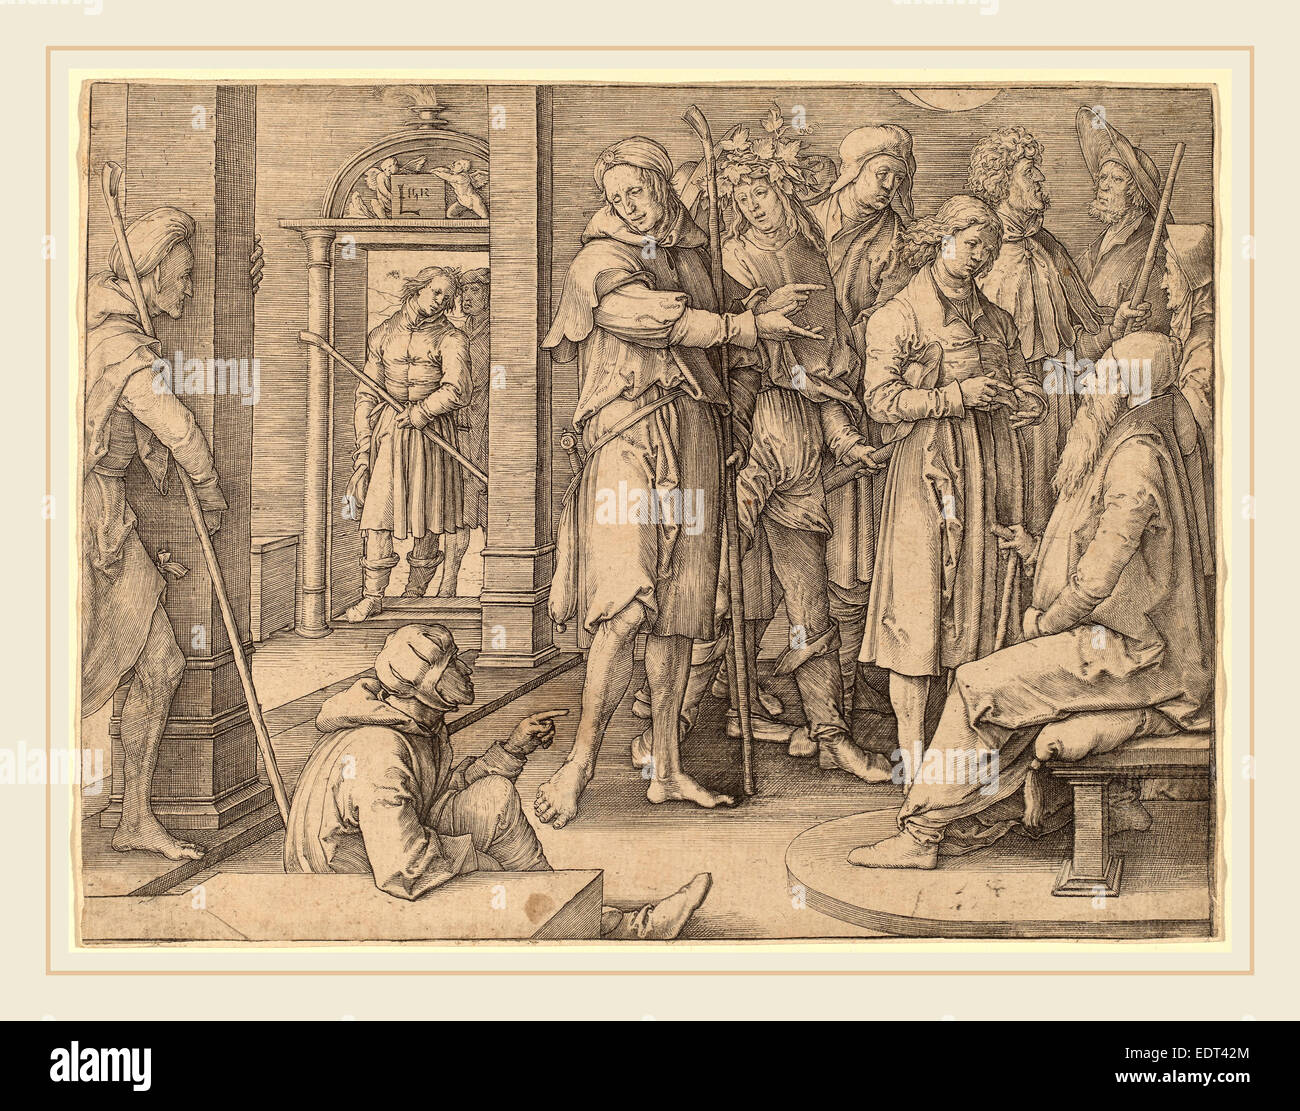 Lucas van Leyden (Netherlandish, 1489-1494-1533), Joseph Interprets His Dream to Jacob, 1512, engraving - Stock Image